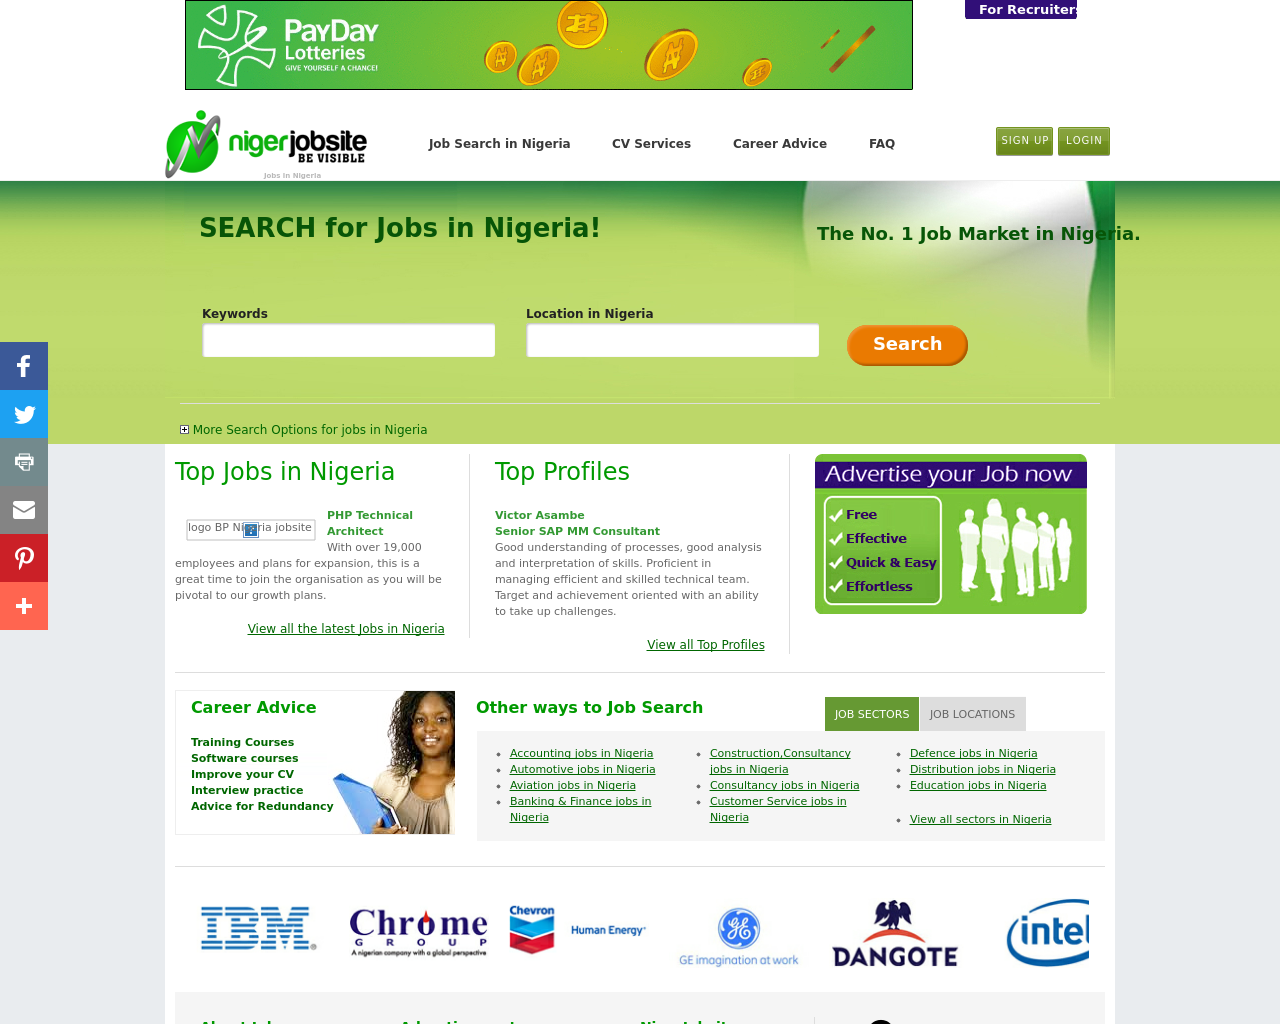 NigerJobsite-Advertising-Reviews-Pricing